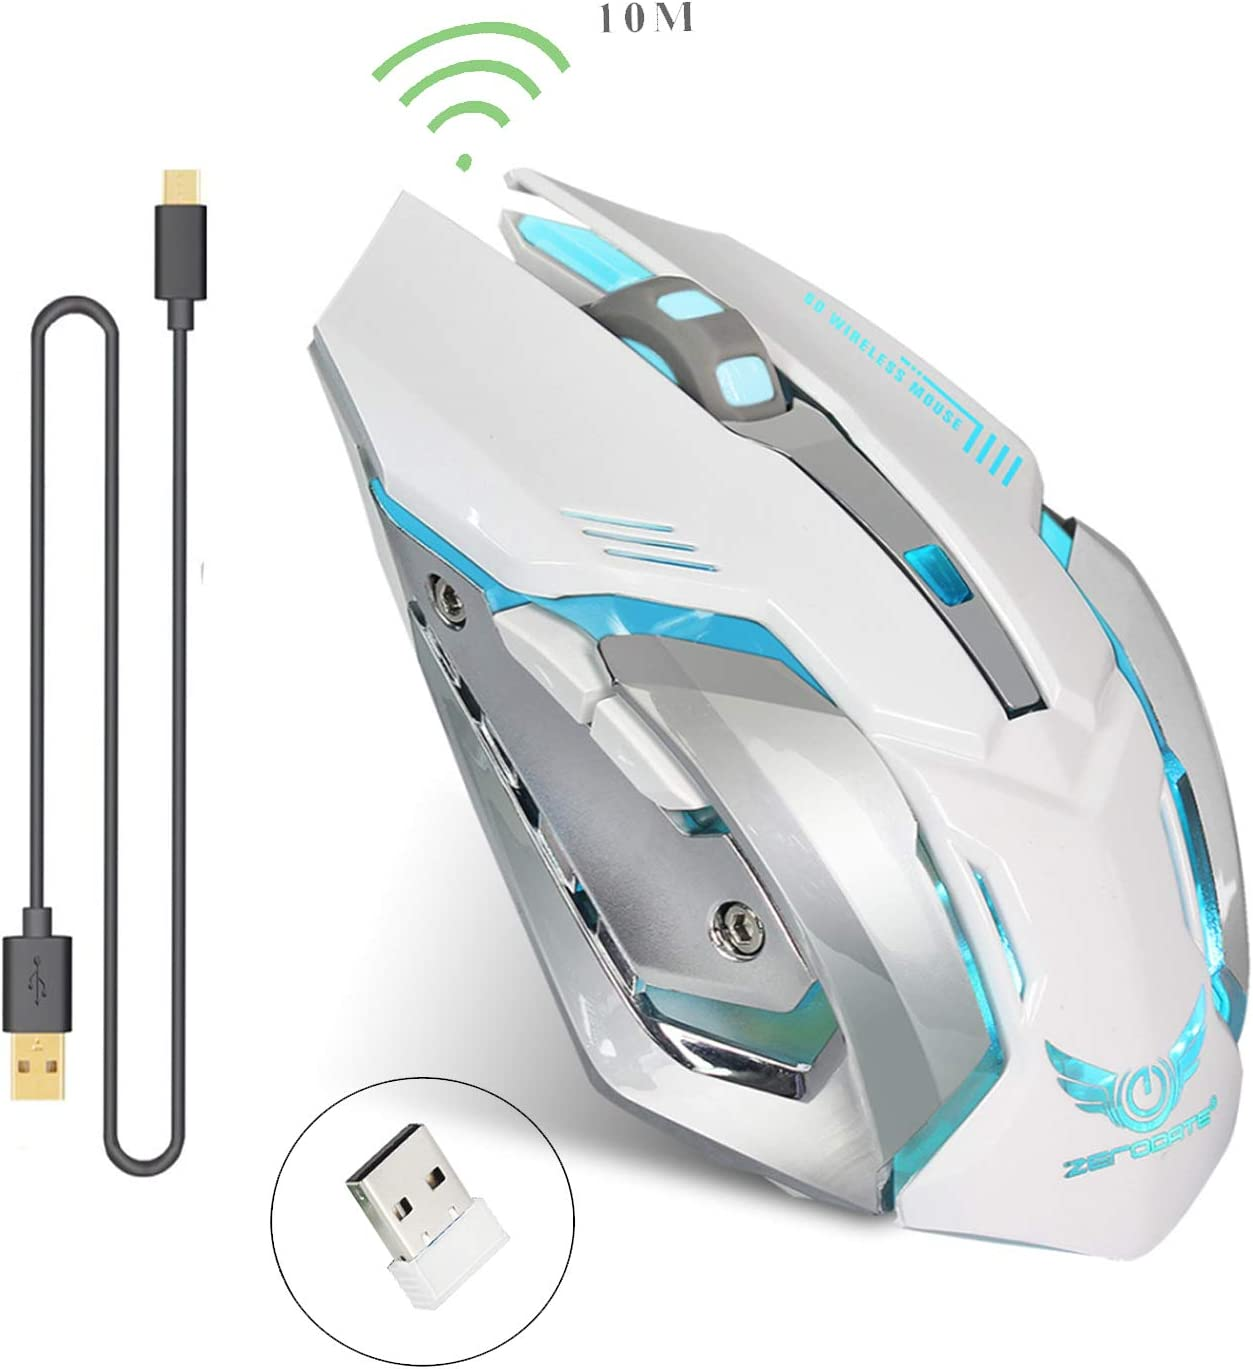 Rechargeable 2.4Ghz Wireless Gaming Mouse with USB Receiver,7 Colors Backlit for MacBook, Computer PC, Laptop (600Mah Lithium Battery) (White)